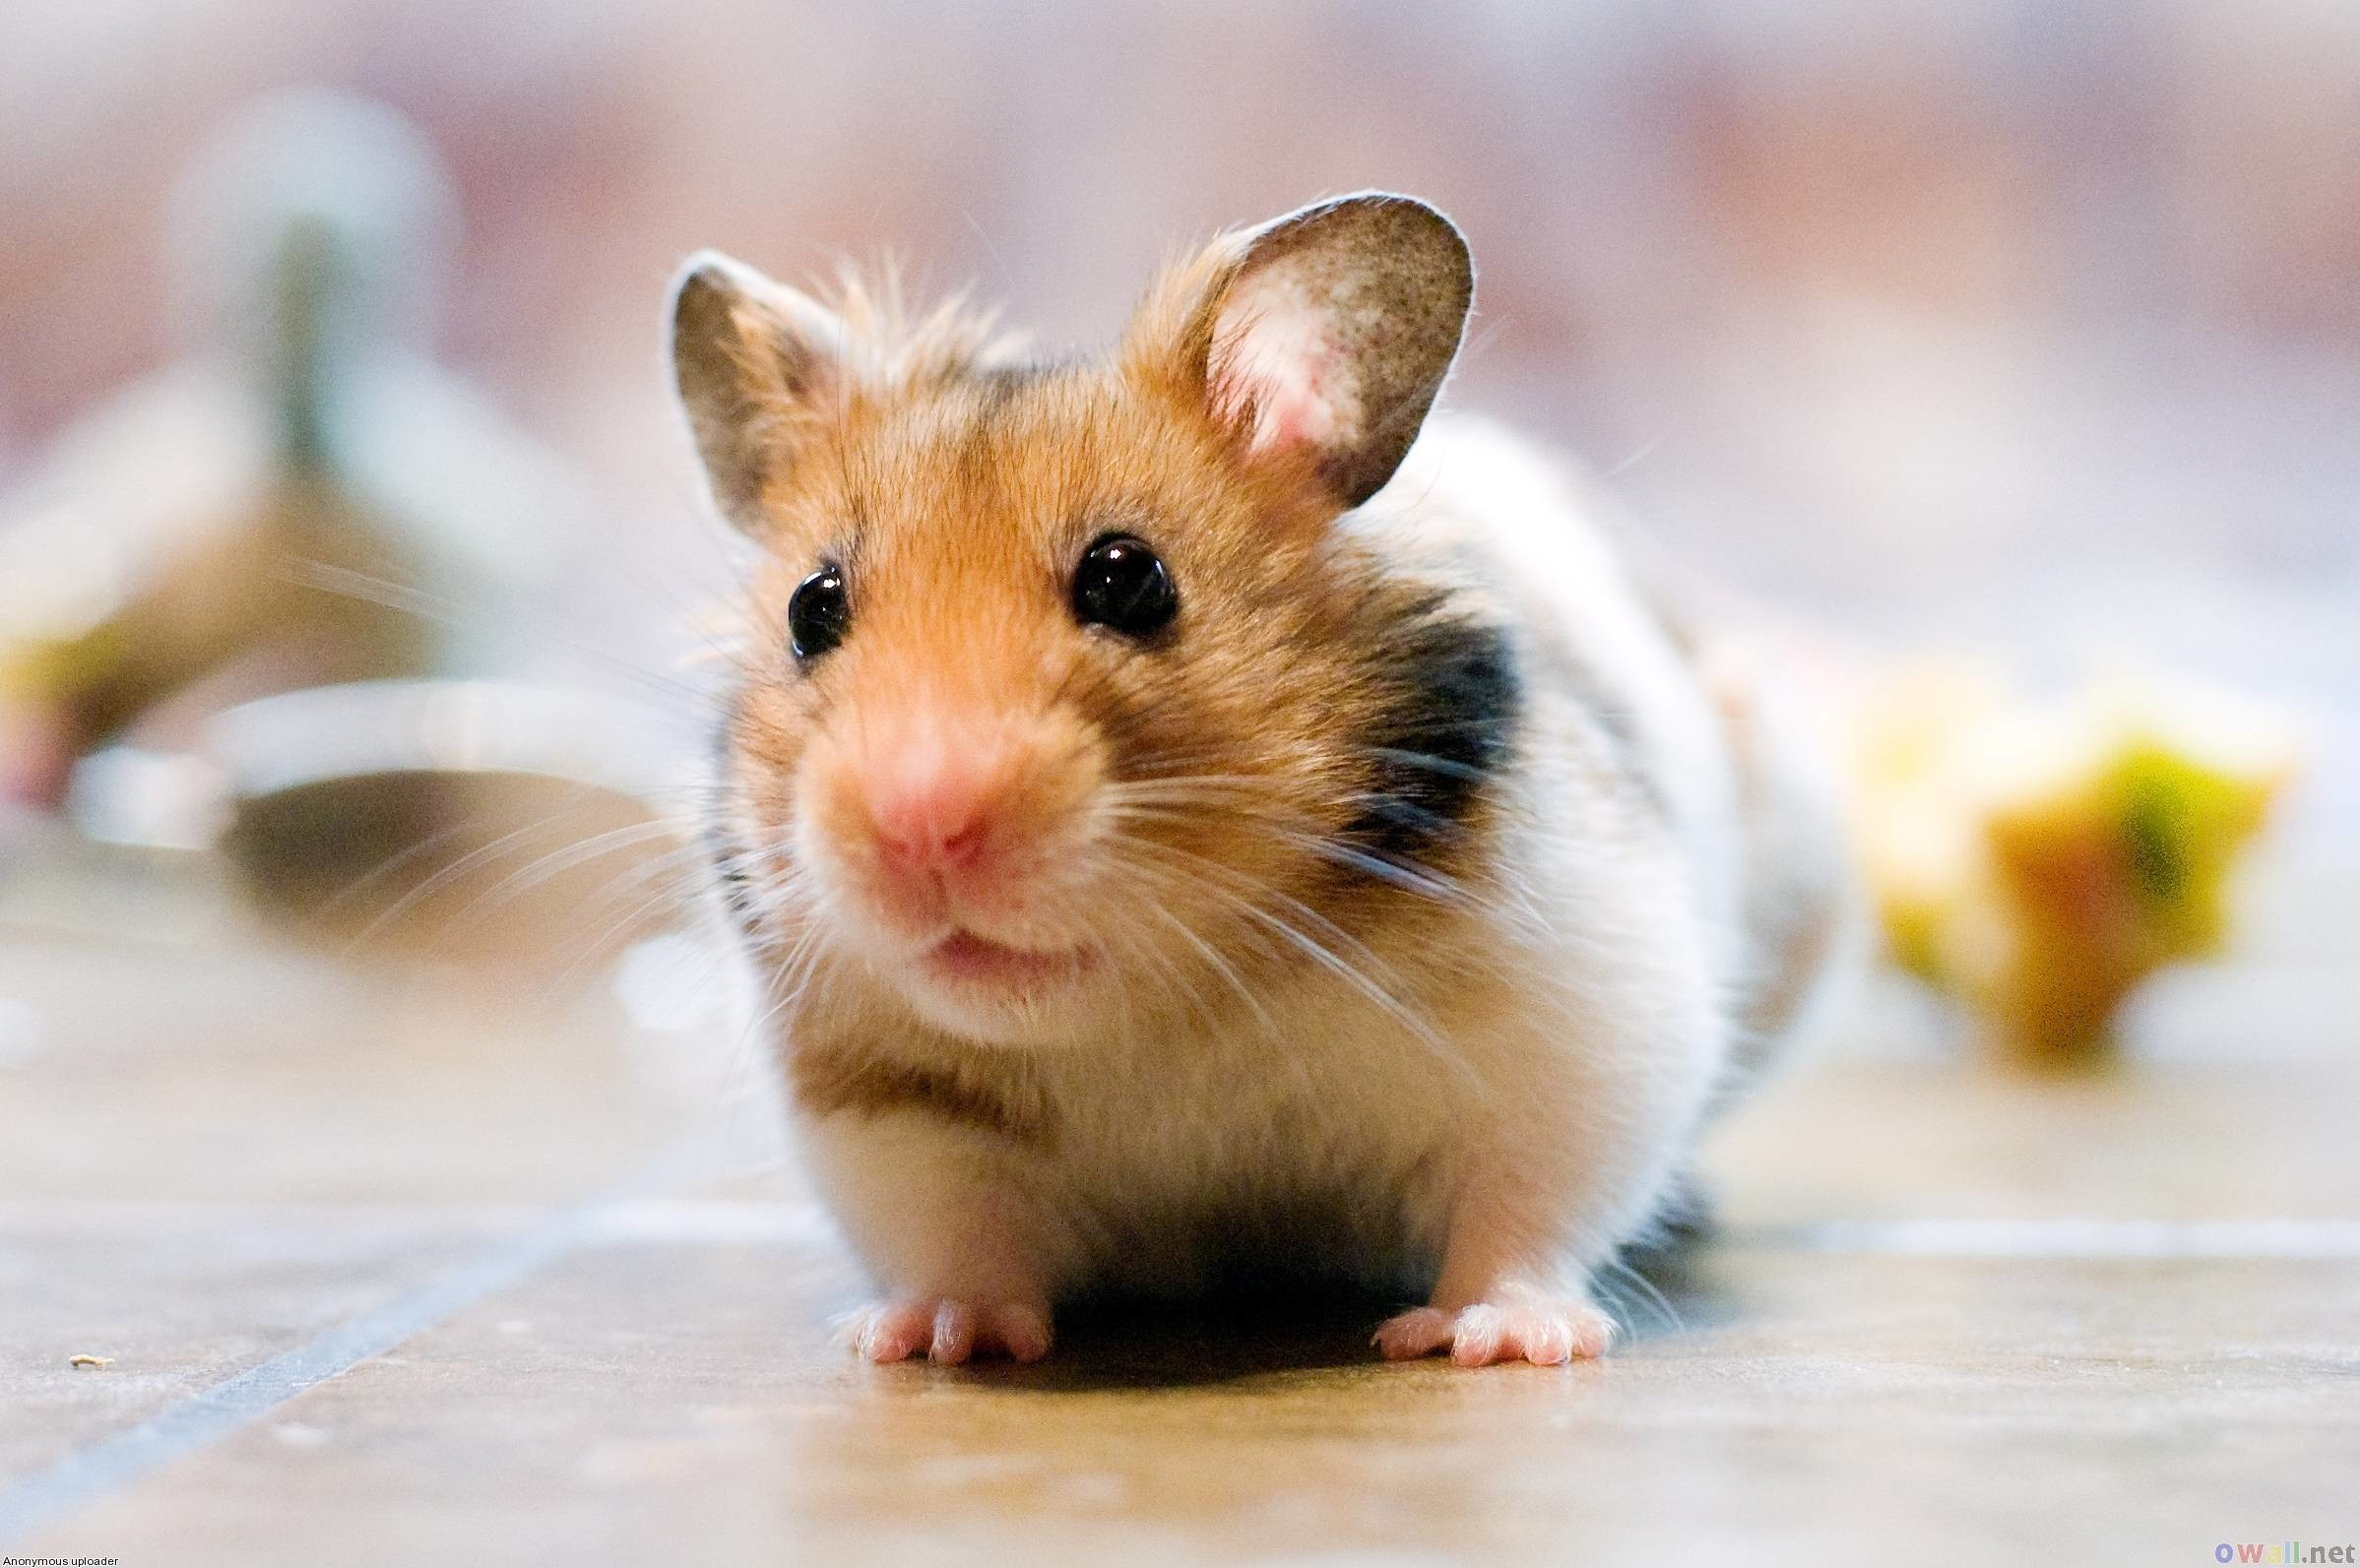 2397x1593 Cute Hamster Wallpaper Desktop Best Hd Wallpapers Litle Pups 1024×768 Cute  Hamster Wallpapers (44 Wallpapers) | Adorable Wallpapers | Wallpapers |  Pinterest ...